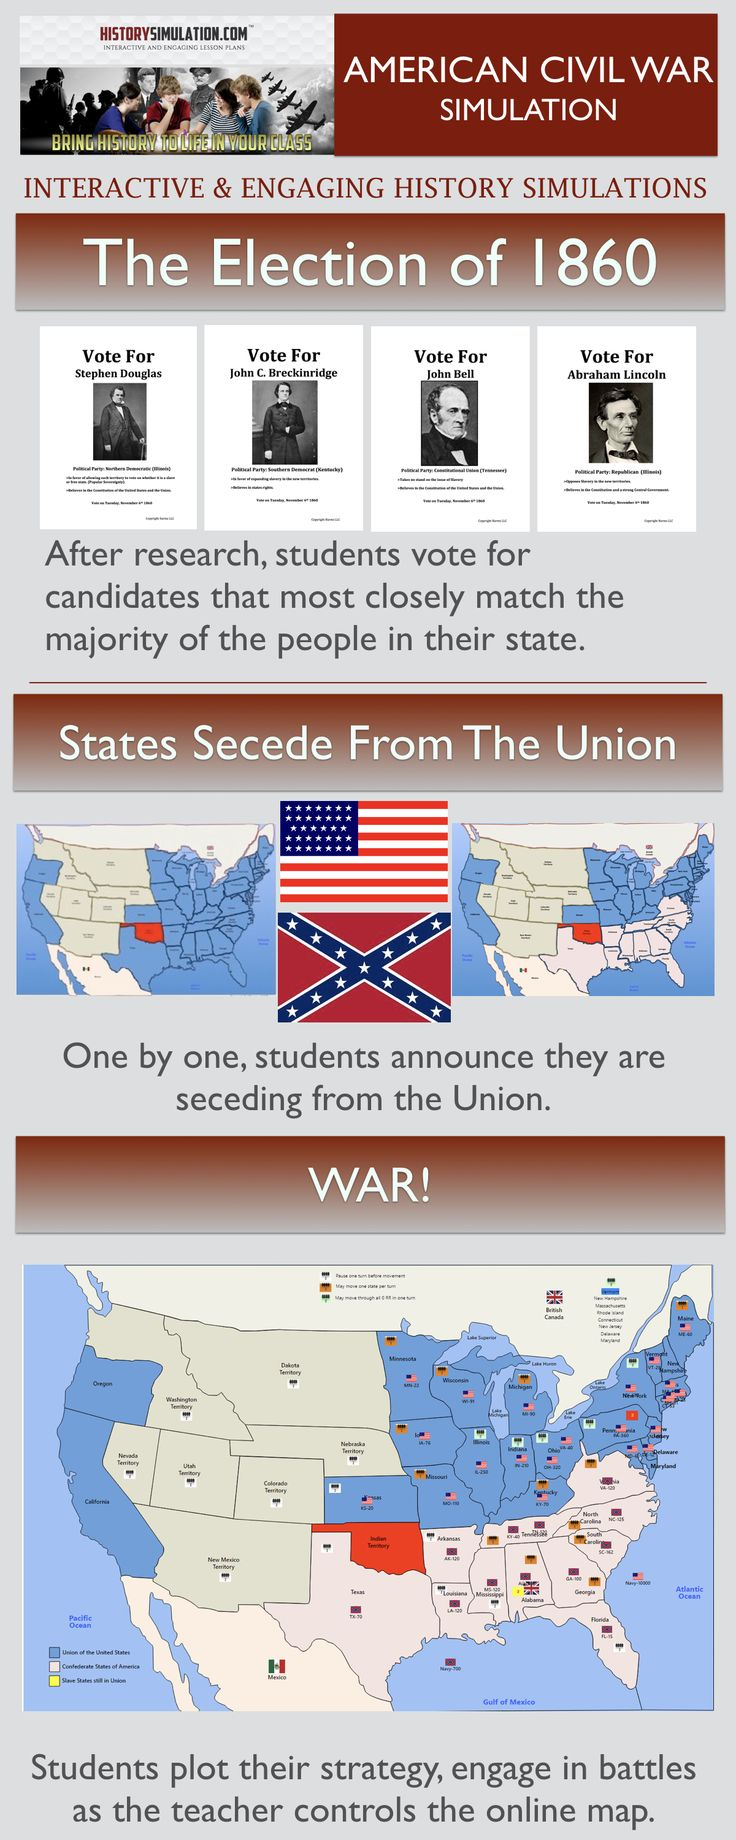 Students Will Understand:How the Election of 1860 tore the country apart. The effects of the Union Naval Blockade on the Southern economy and military. How the vast Northern Railroad Network moved troops and supplies quickly and efficiently. The impact Northern Industry had on the war effort. How Natural Resources are the life-blood of industry and manufacturing. How the South, despite all its disadvantages, put up a tremendous fight for their homeland and way of life.